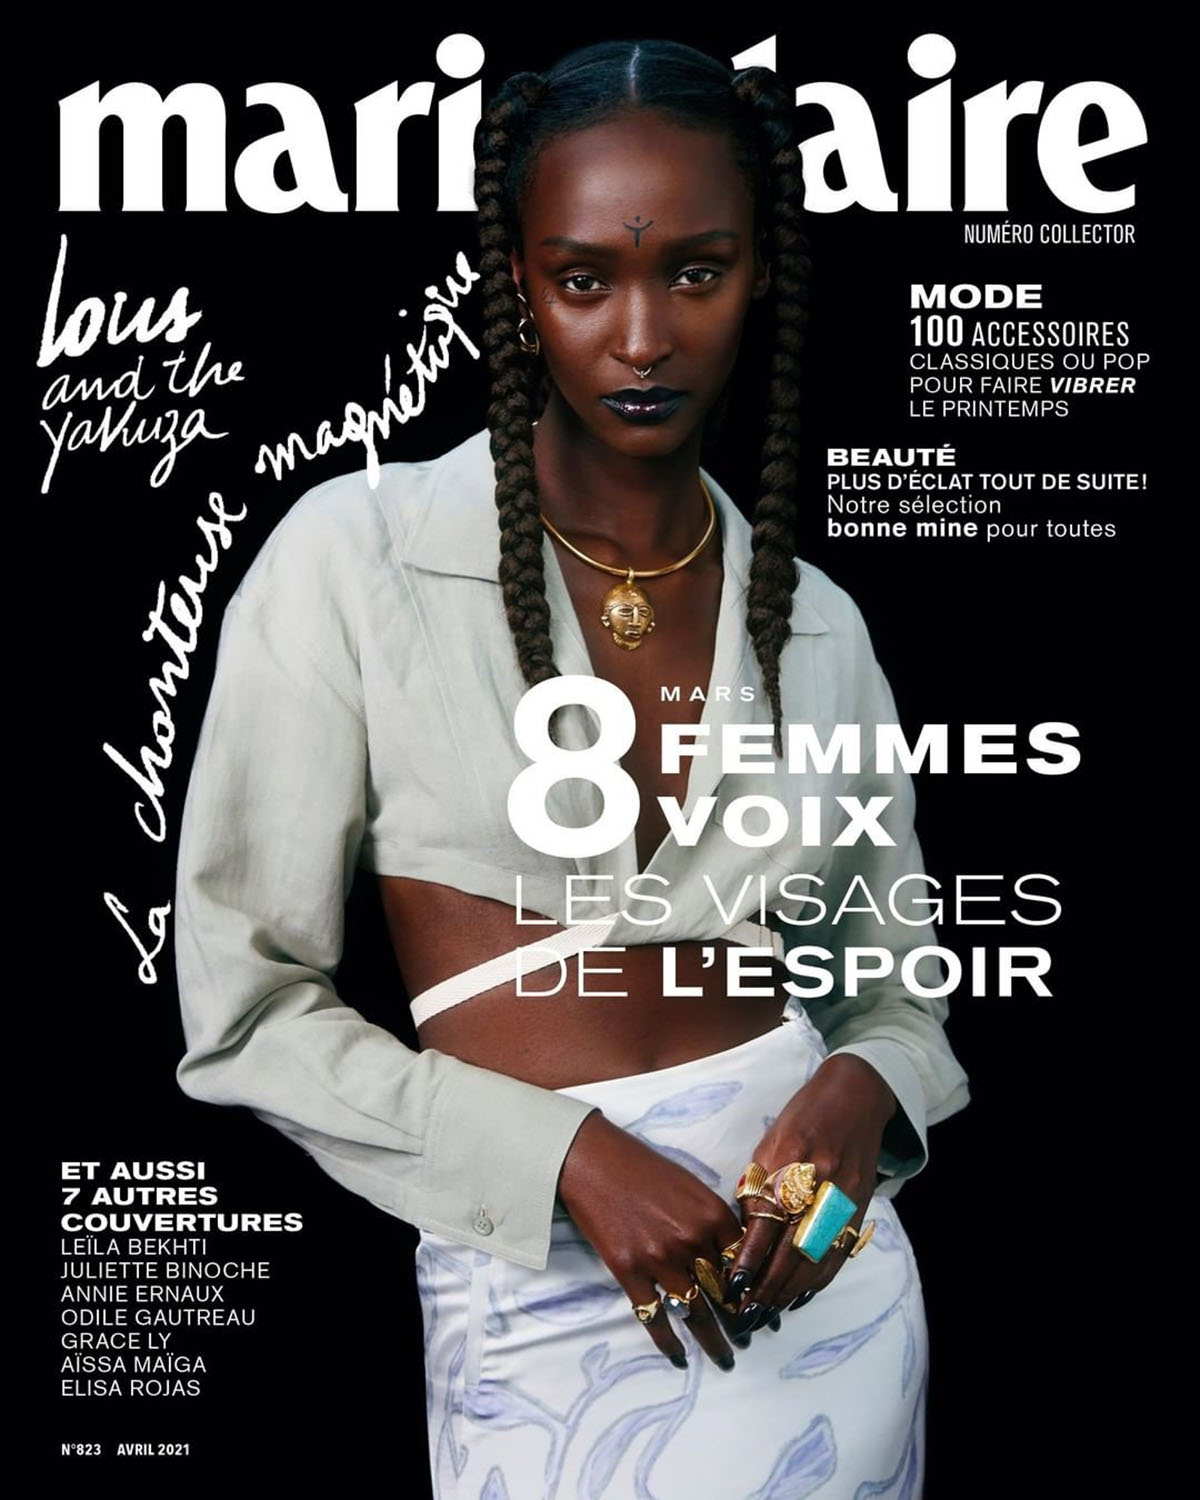 Lous and the Yakuza covers Marie Claire France April 2021 by Corentin Leroux